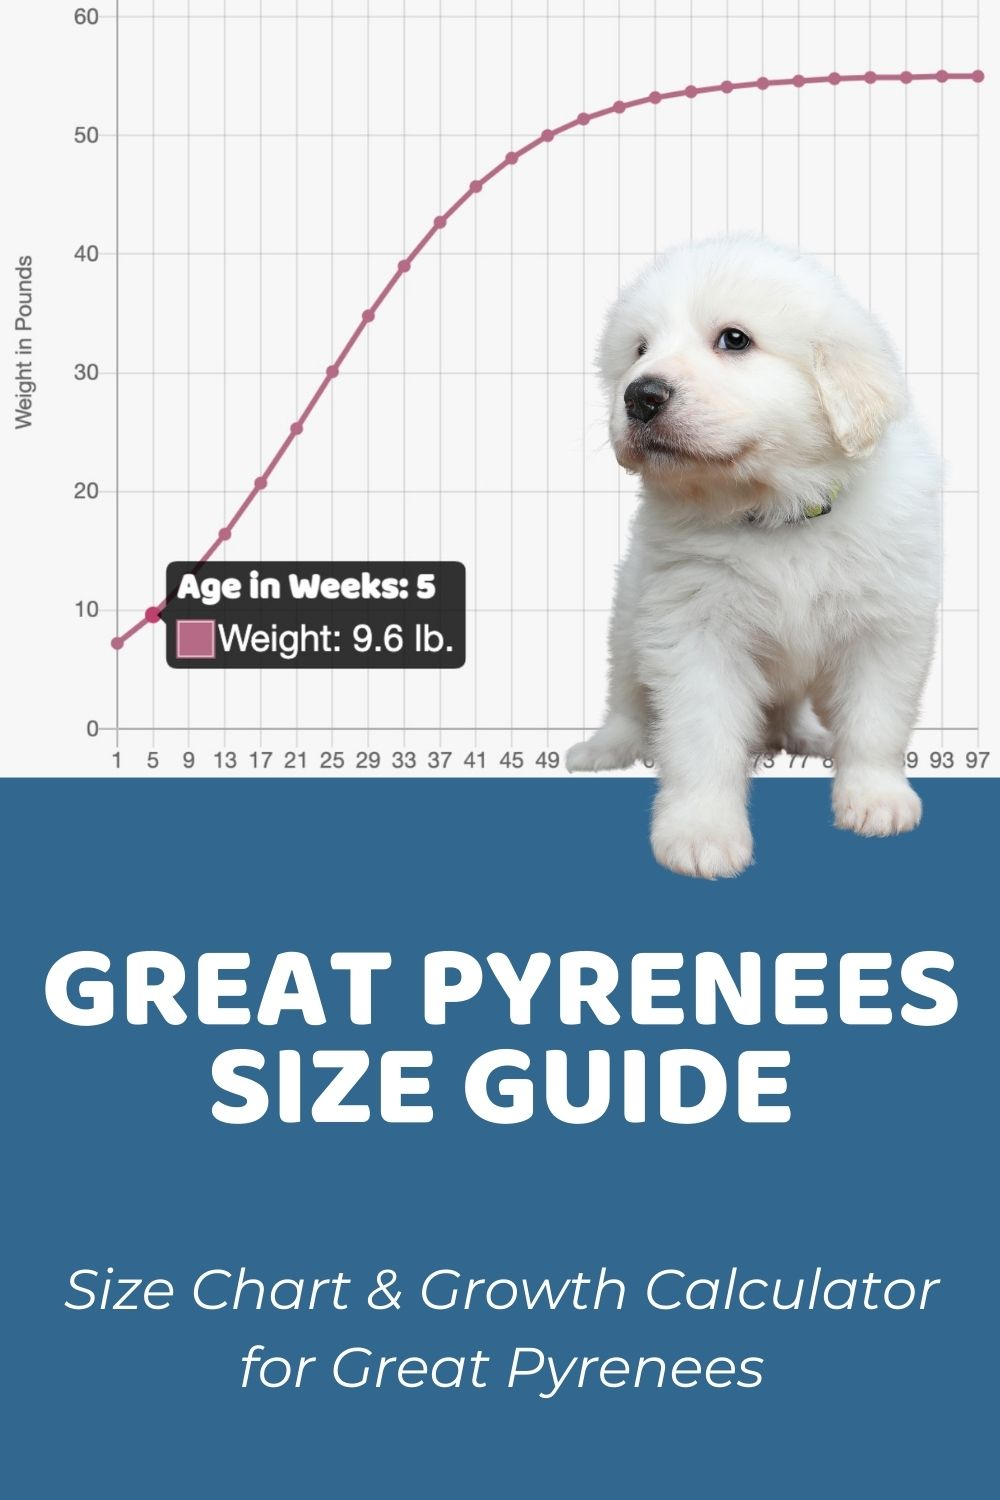 Great Pyrenees Size Guide_ How Big Do Great Pyrenees Get_